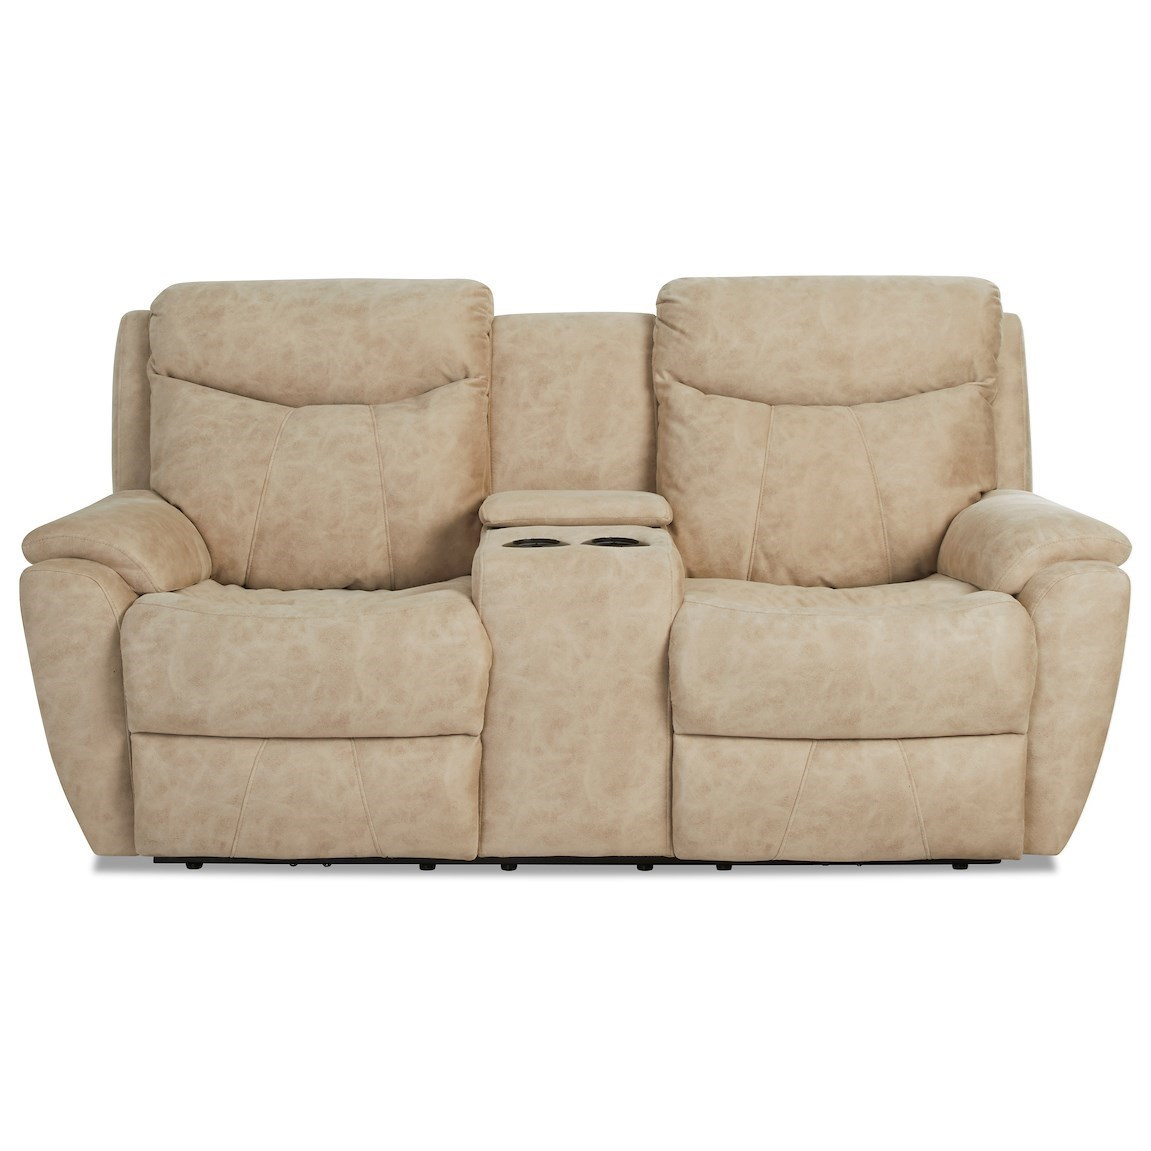 Proximo Power Console Reclining Loveseat by Klaussner at Northeast Factory Direct